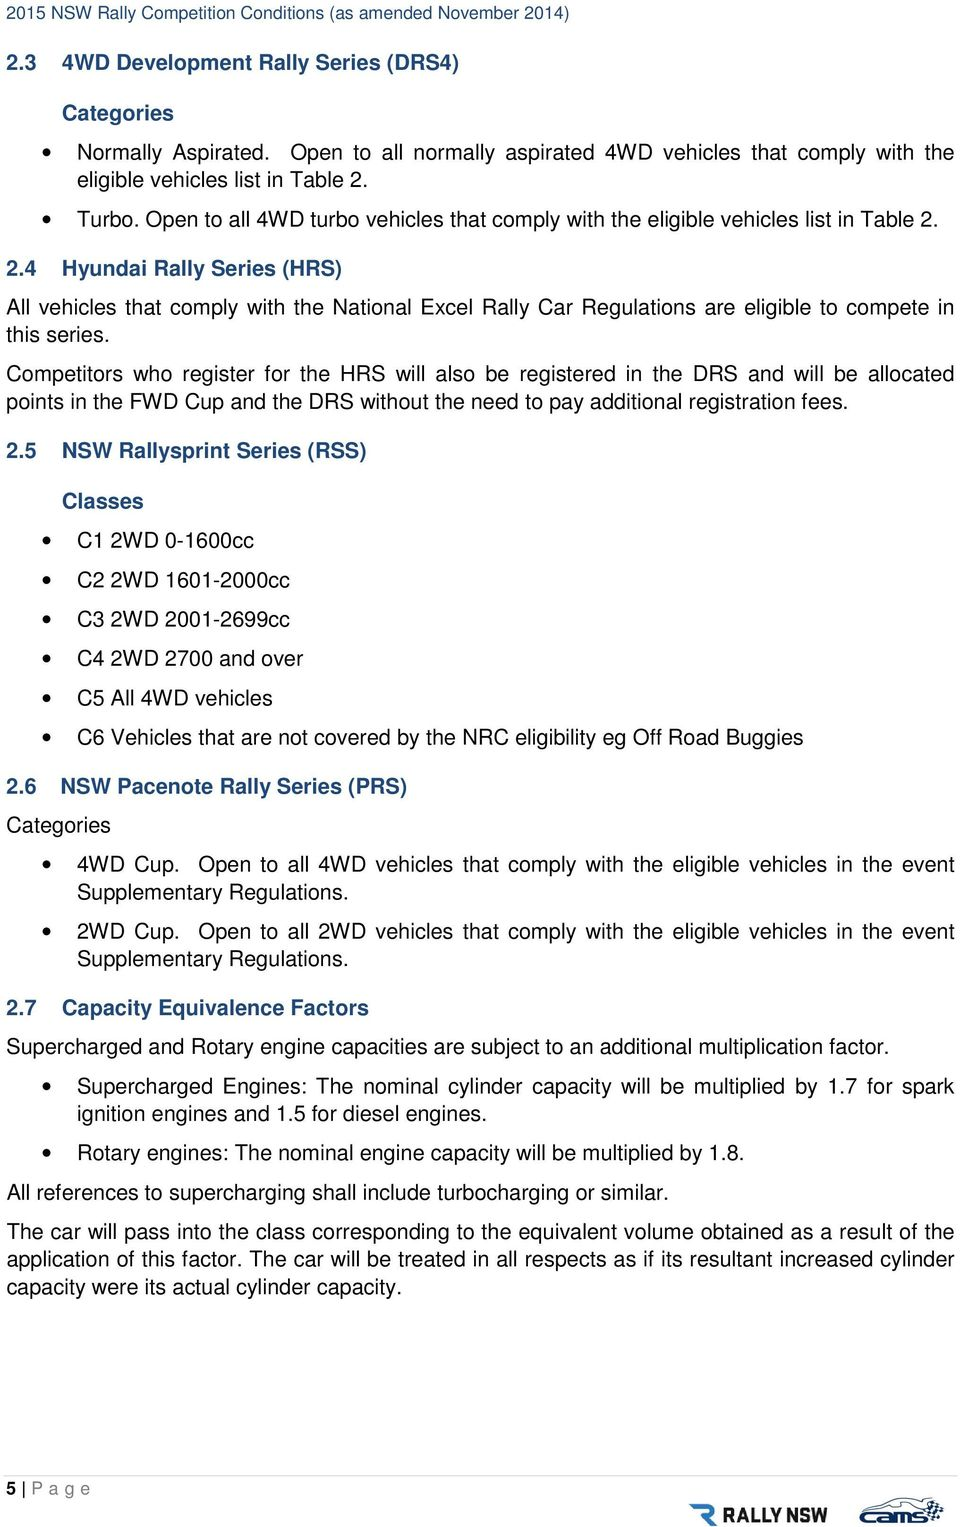 2.4 Hyundai Rally Series (HRS) All vehicles that comply with the National Excel Rally Car Regulations are eligible to compete in this series.